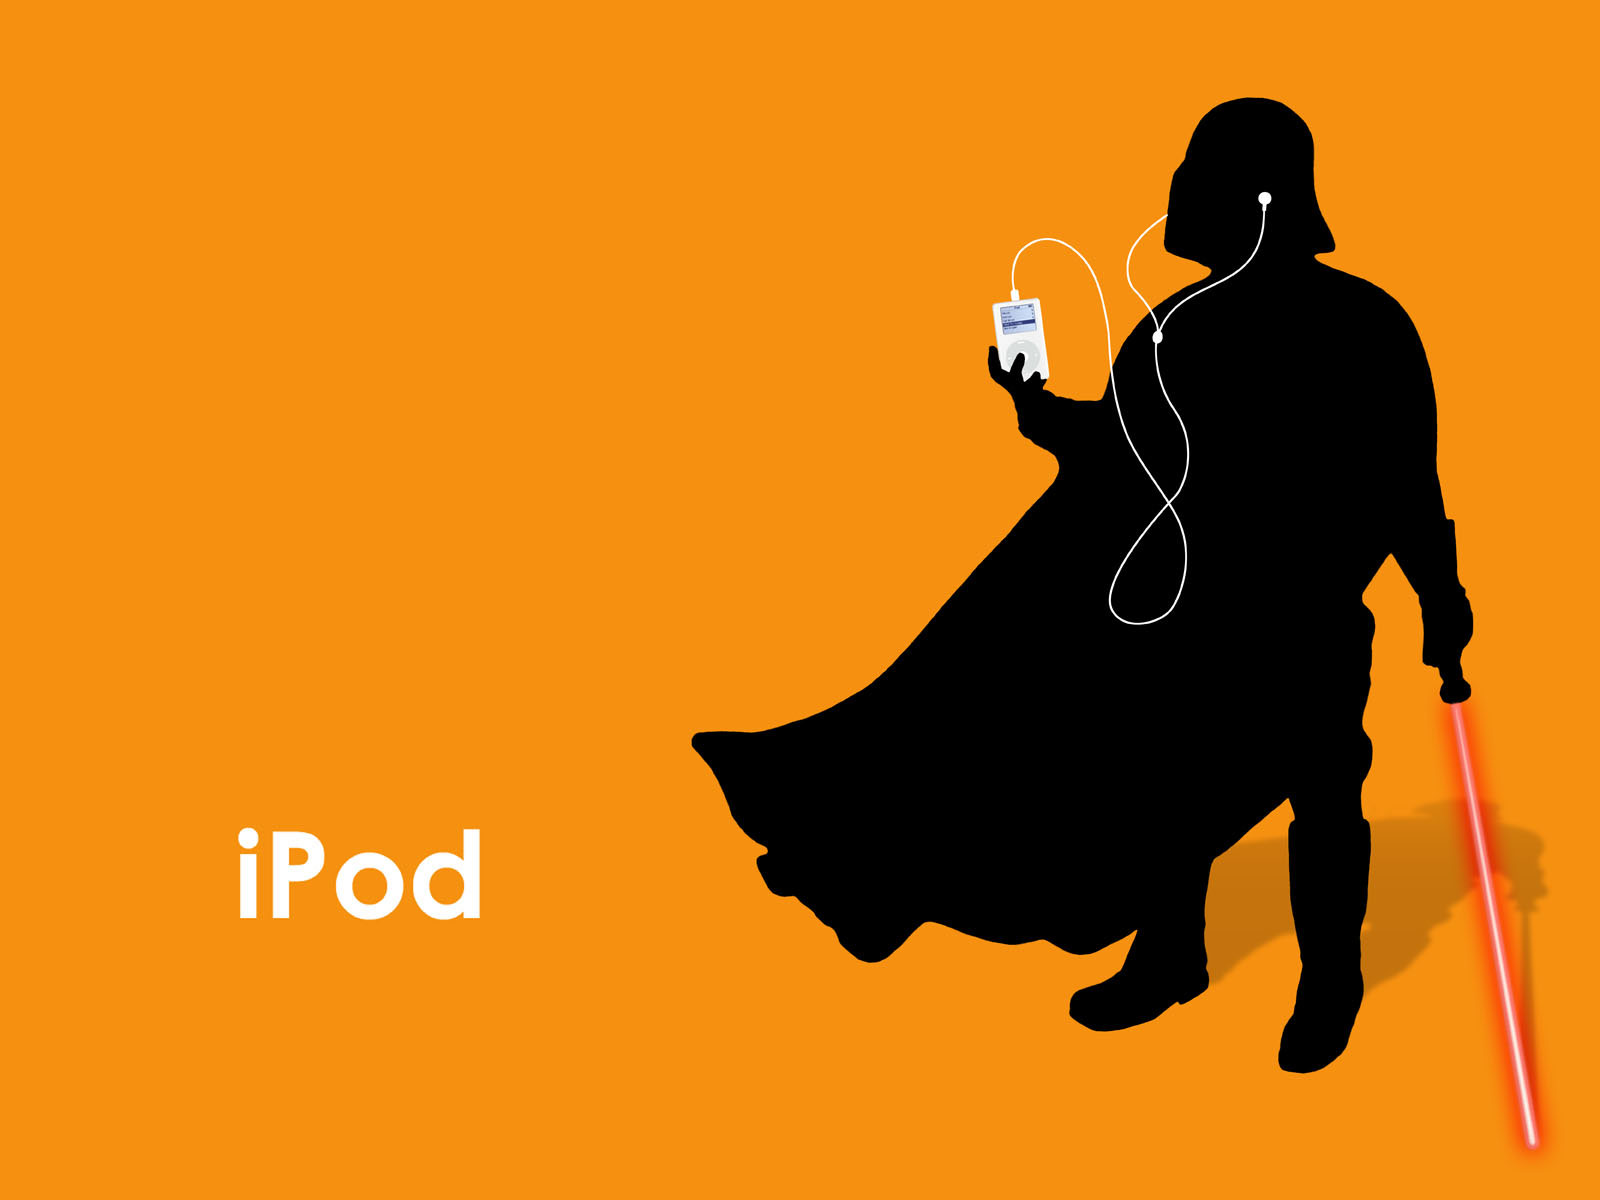 iPod Wallpapers